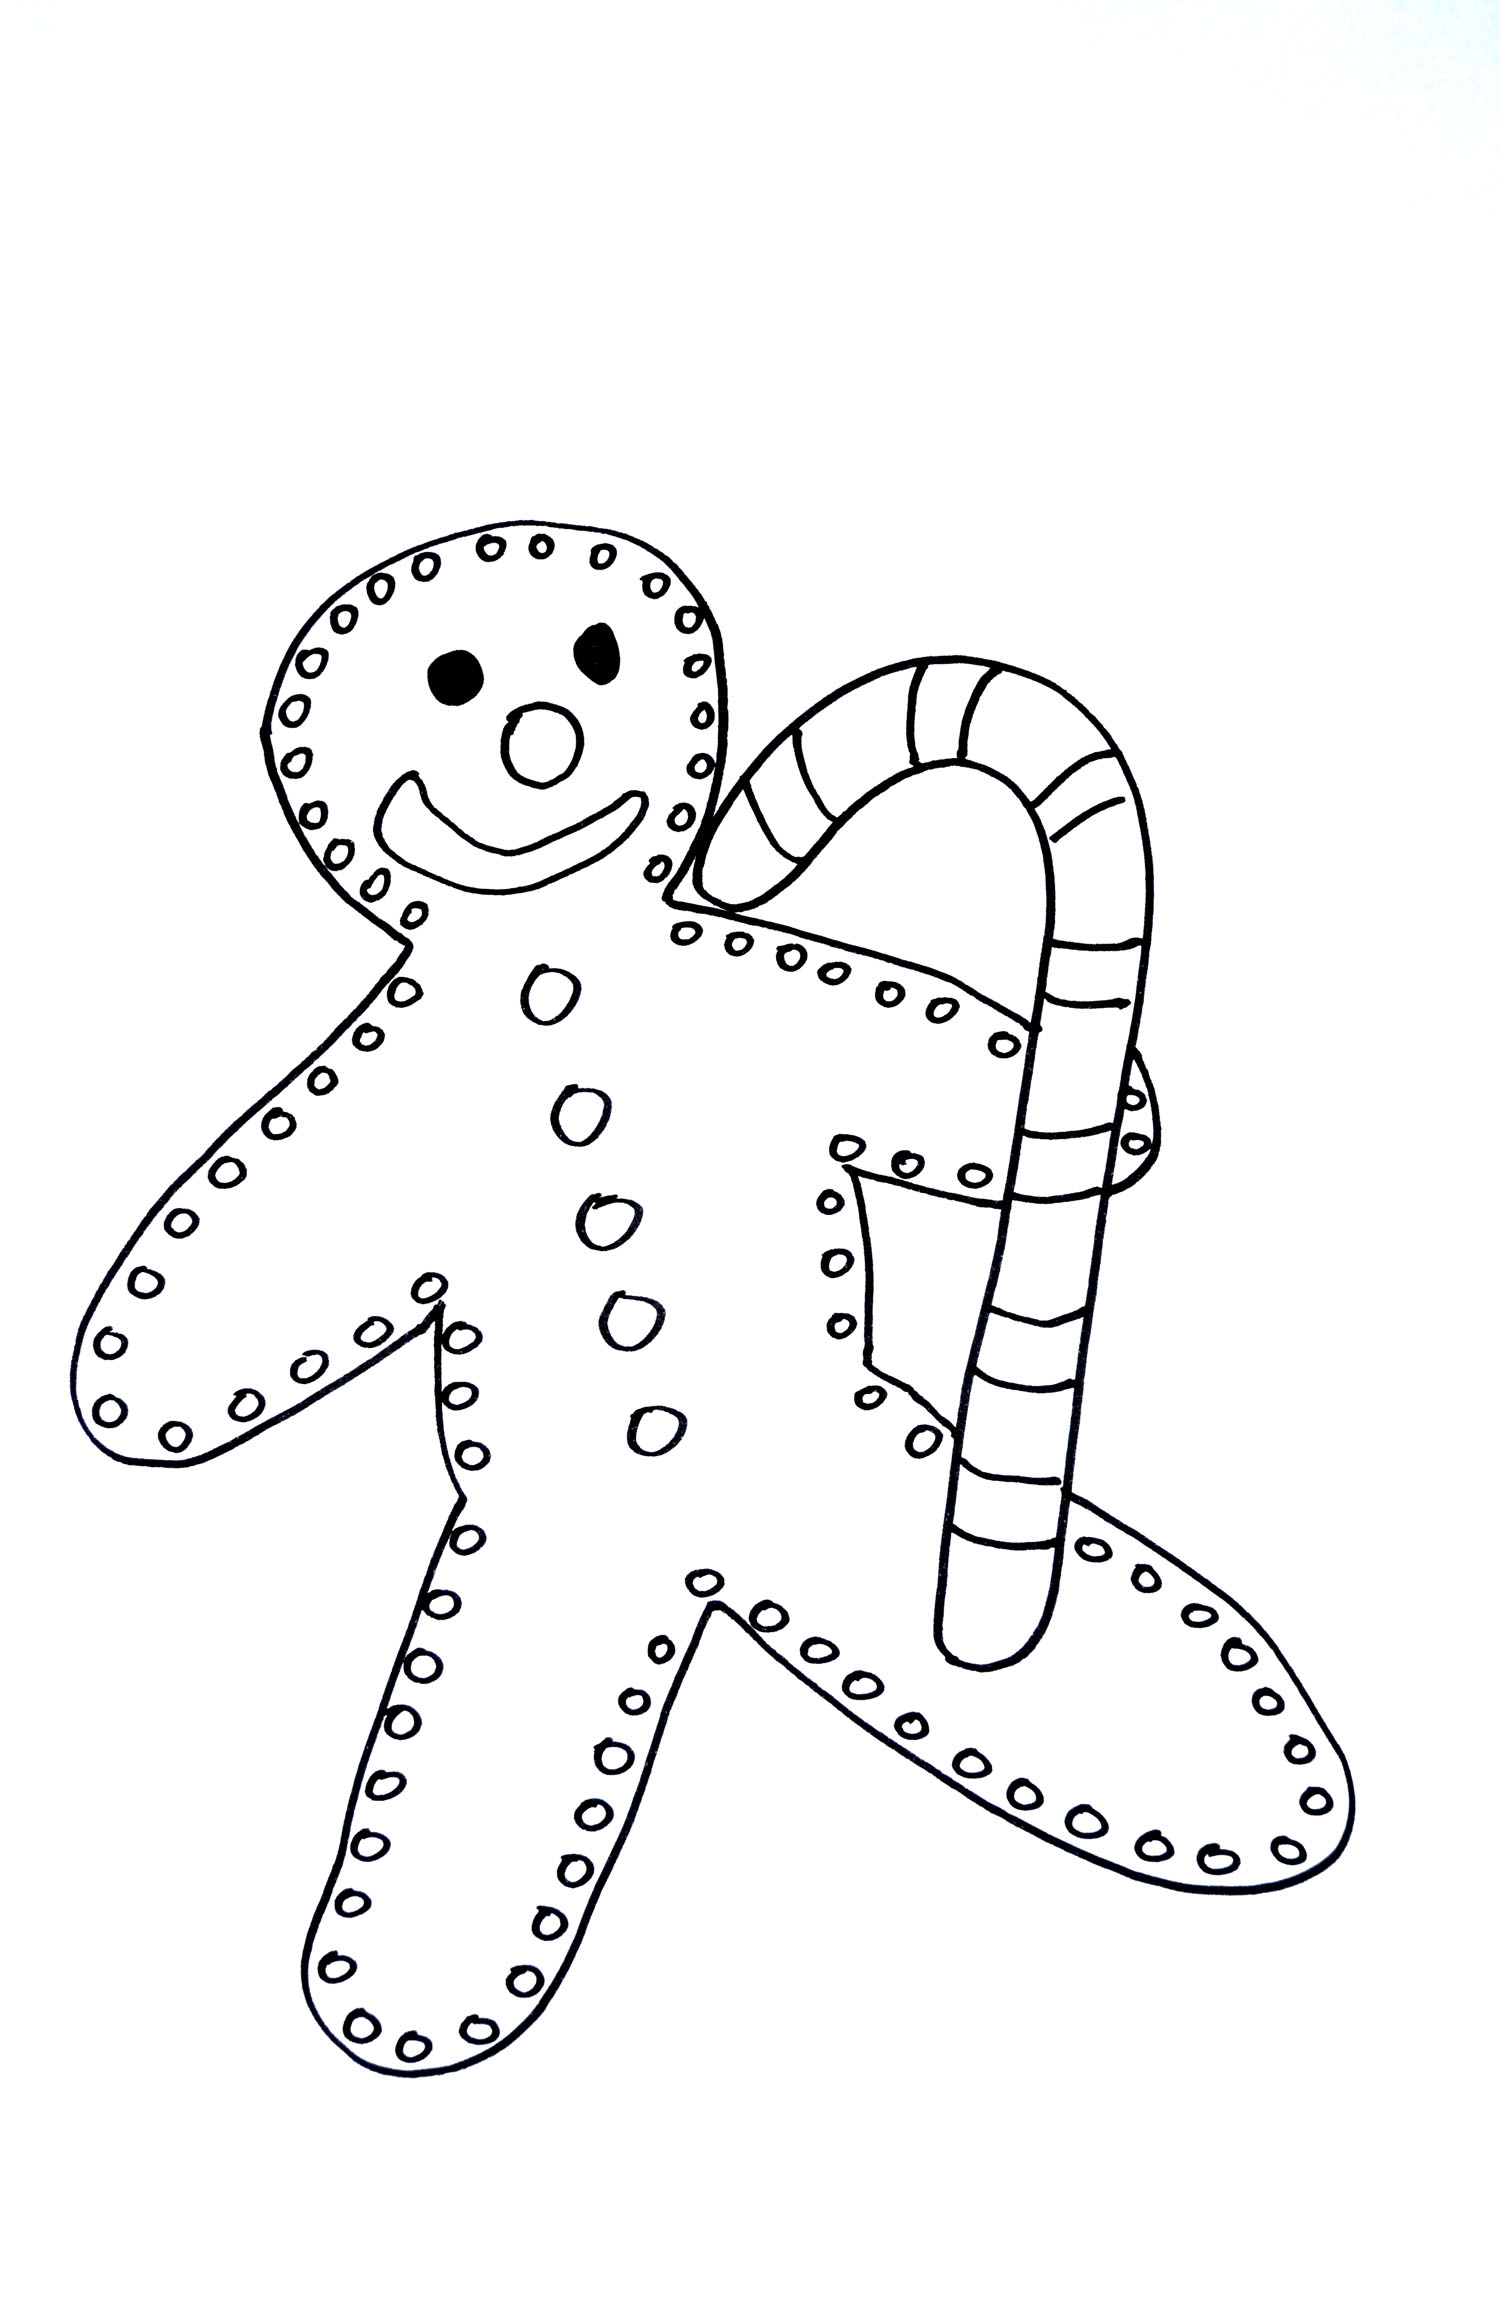 Simple Christmas coloring page to download for free